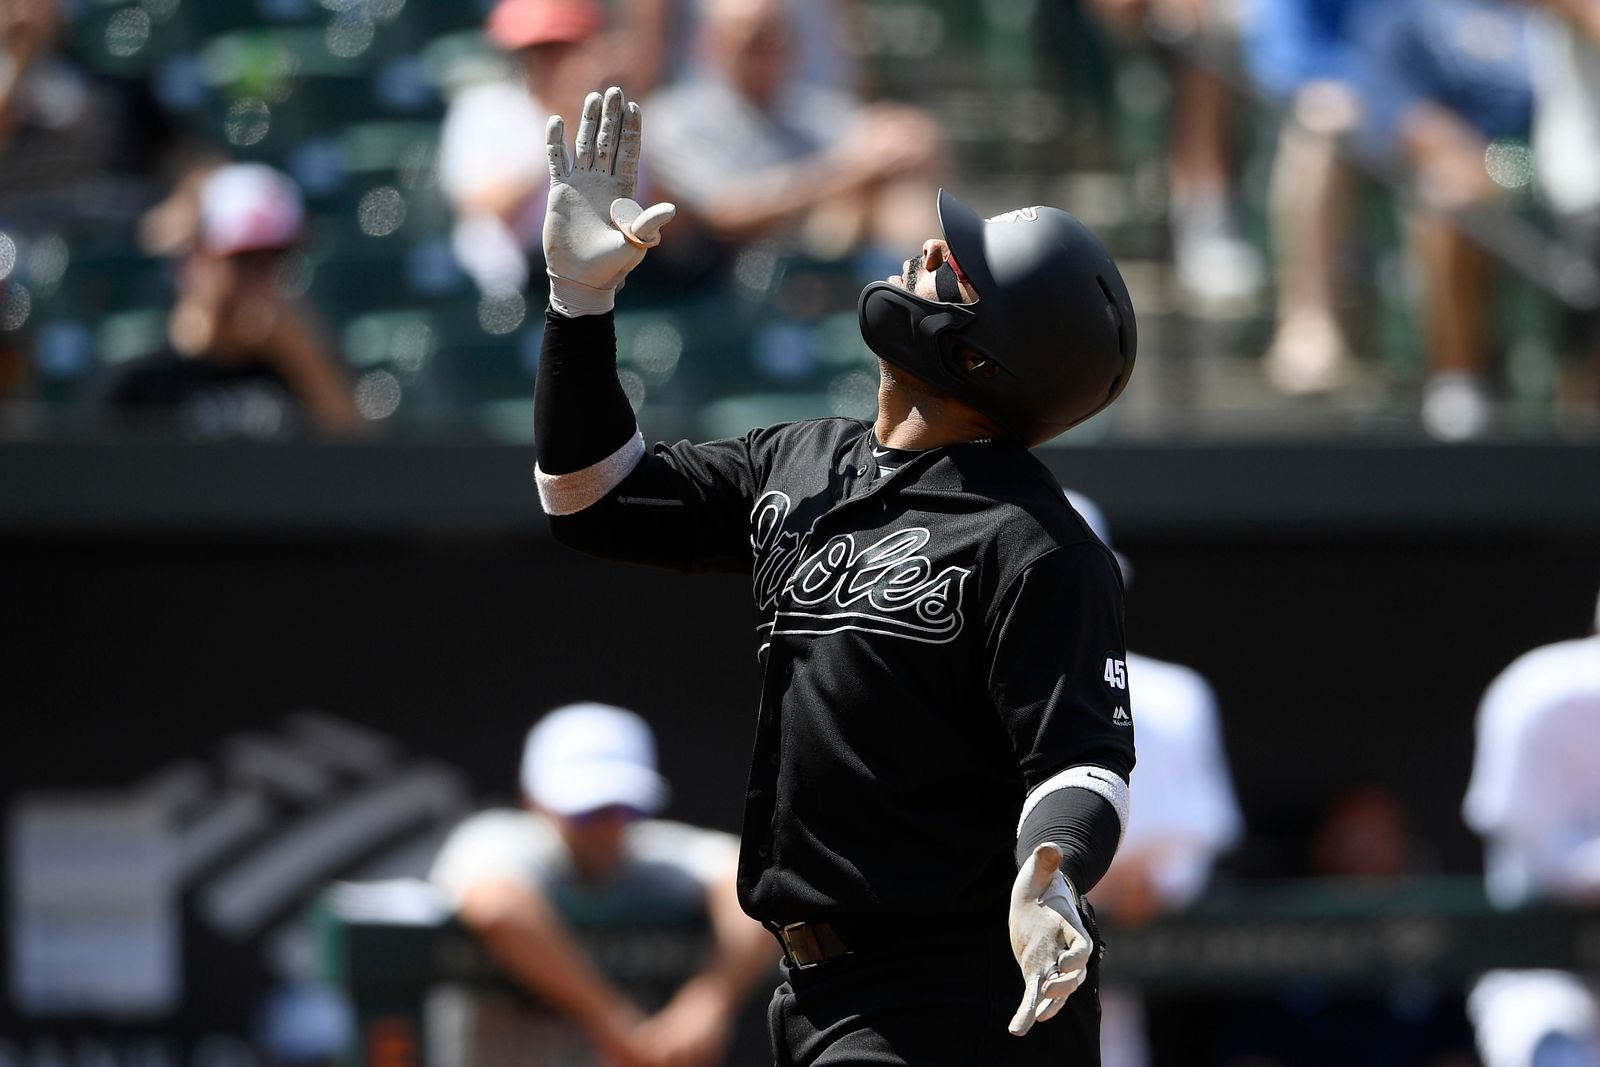 Baltimore Orioles' Jonathan Villar celebrates his home run during the fourth inning of a baseball game against the Tampa Bay Rays, Sunday, Aug. 25, 2019, in Baltimore. (AP Photo/Nick Wass)